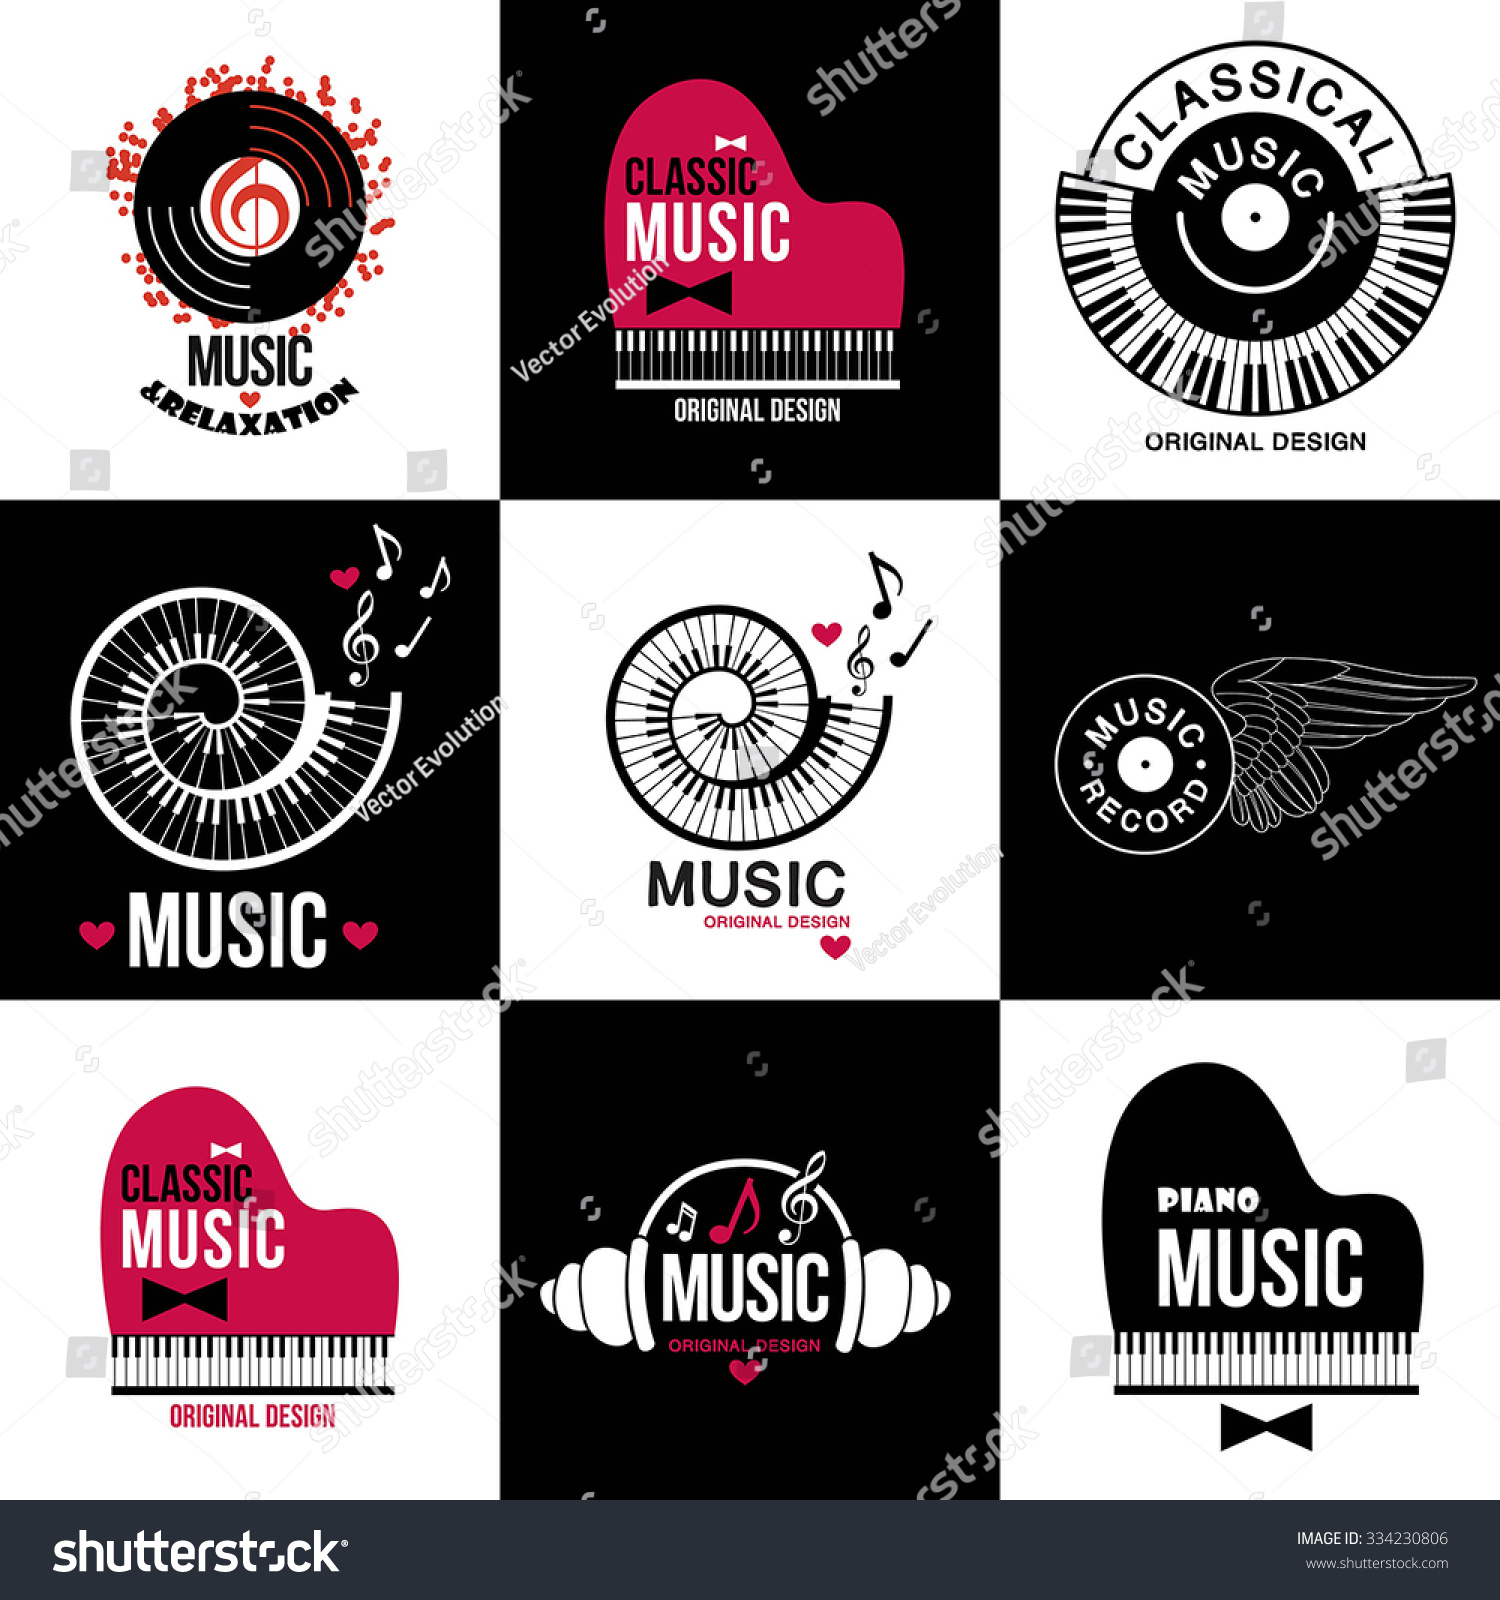 music style logo icon templates music image vectorielle 334230806 shutterstock. Black Bedroom Furniture Sets. Home Design Ideas